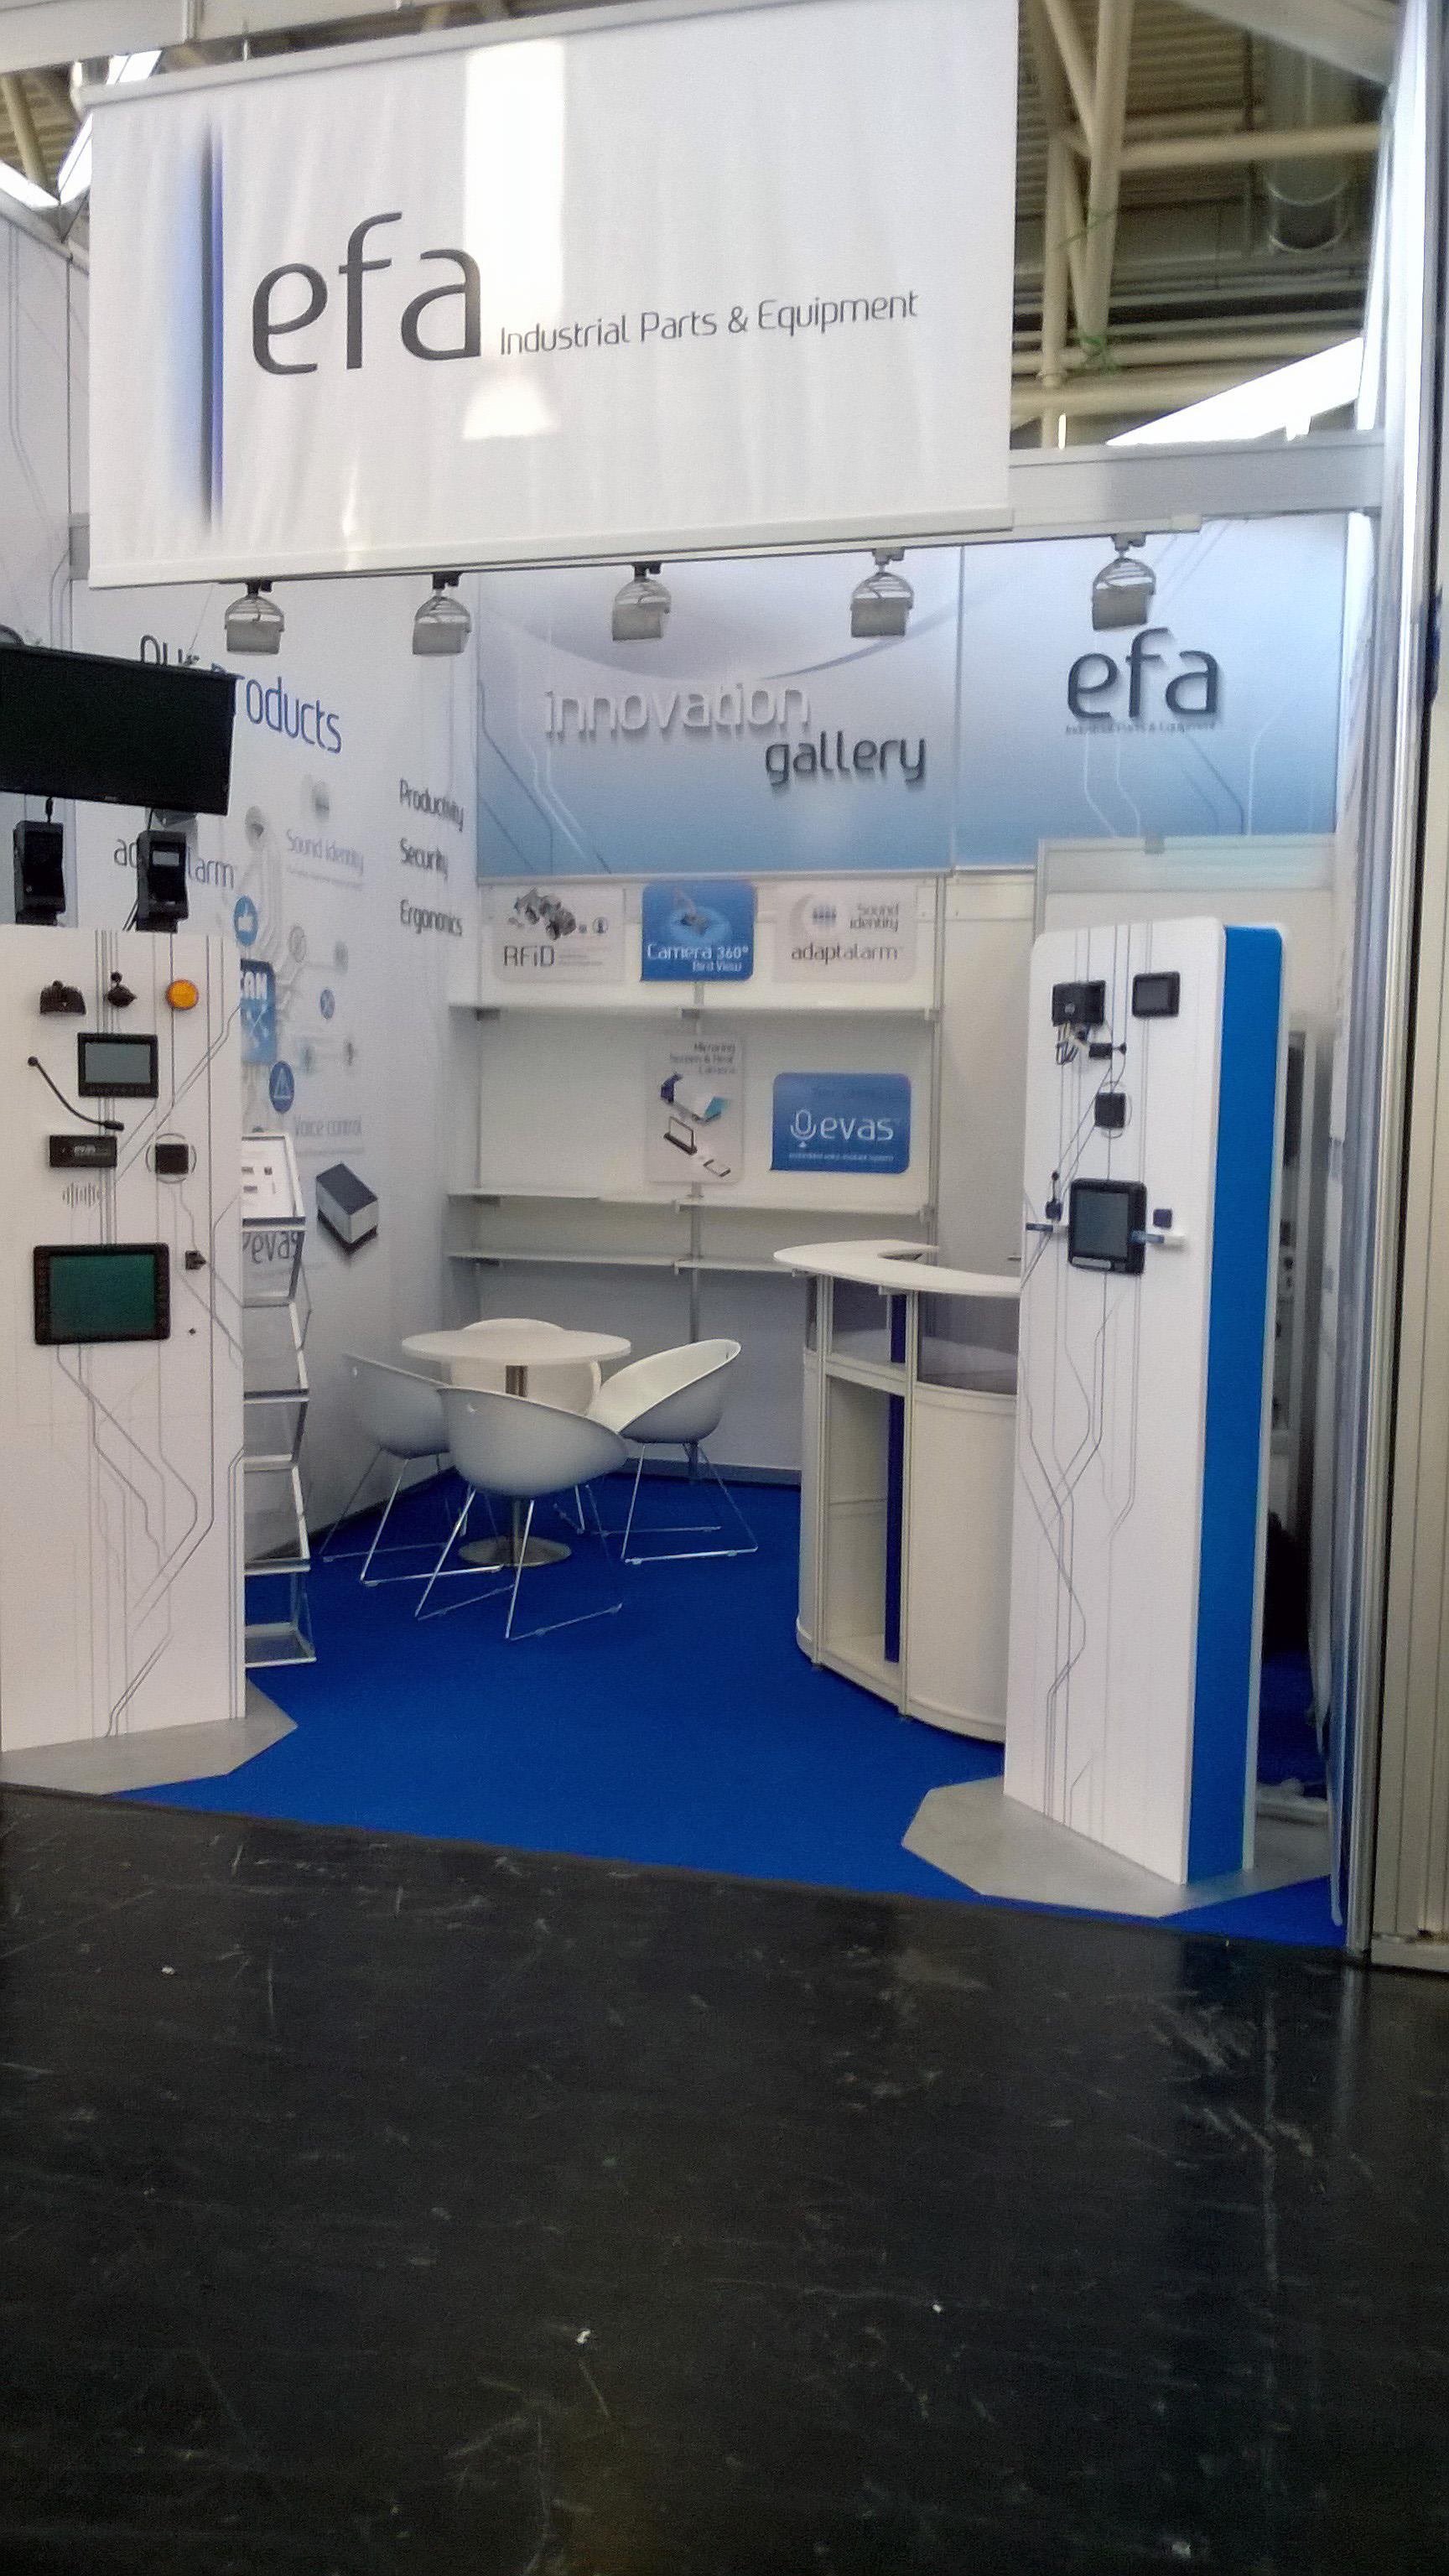 efa Stand 001